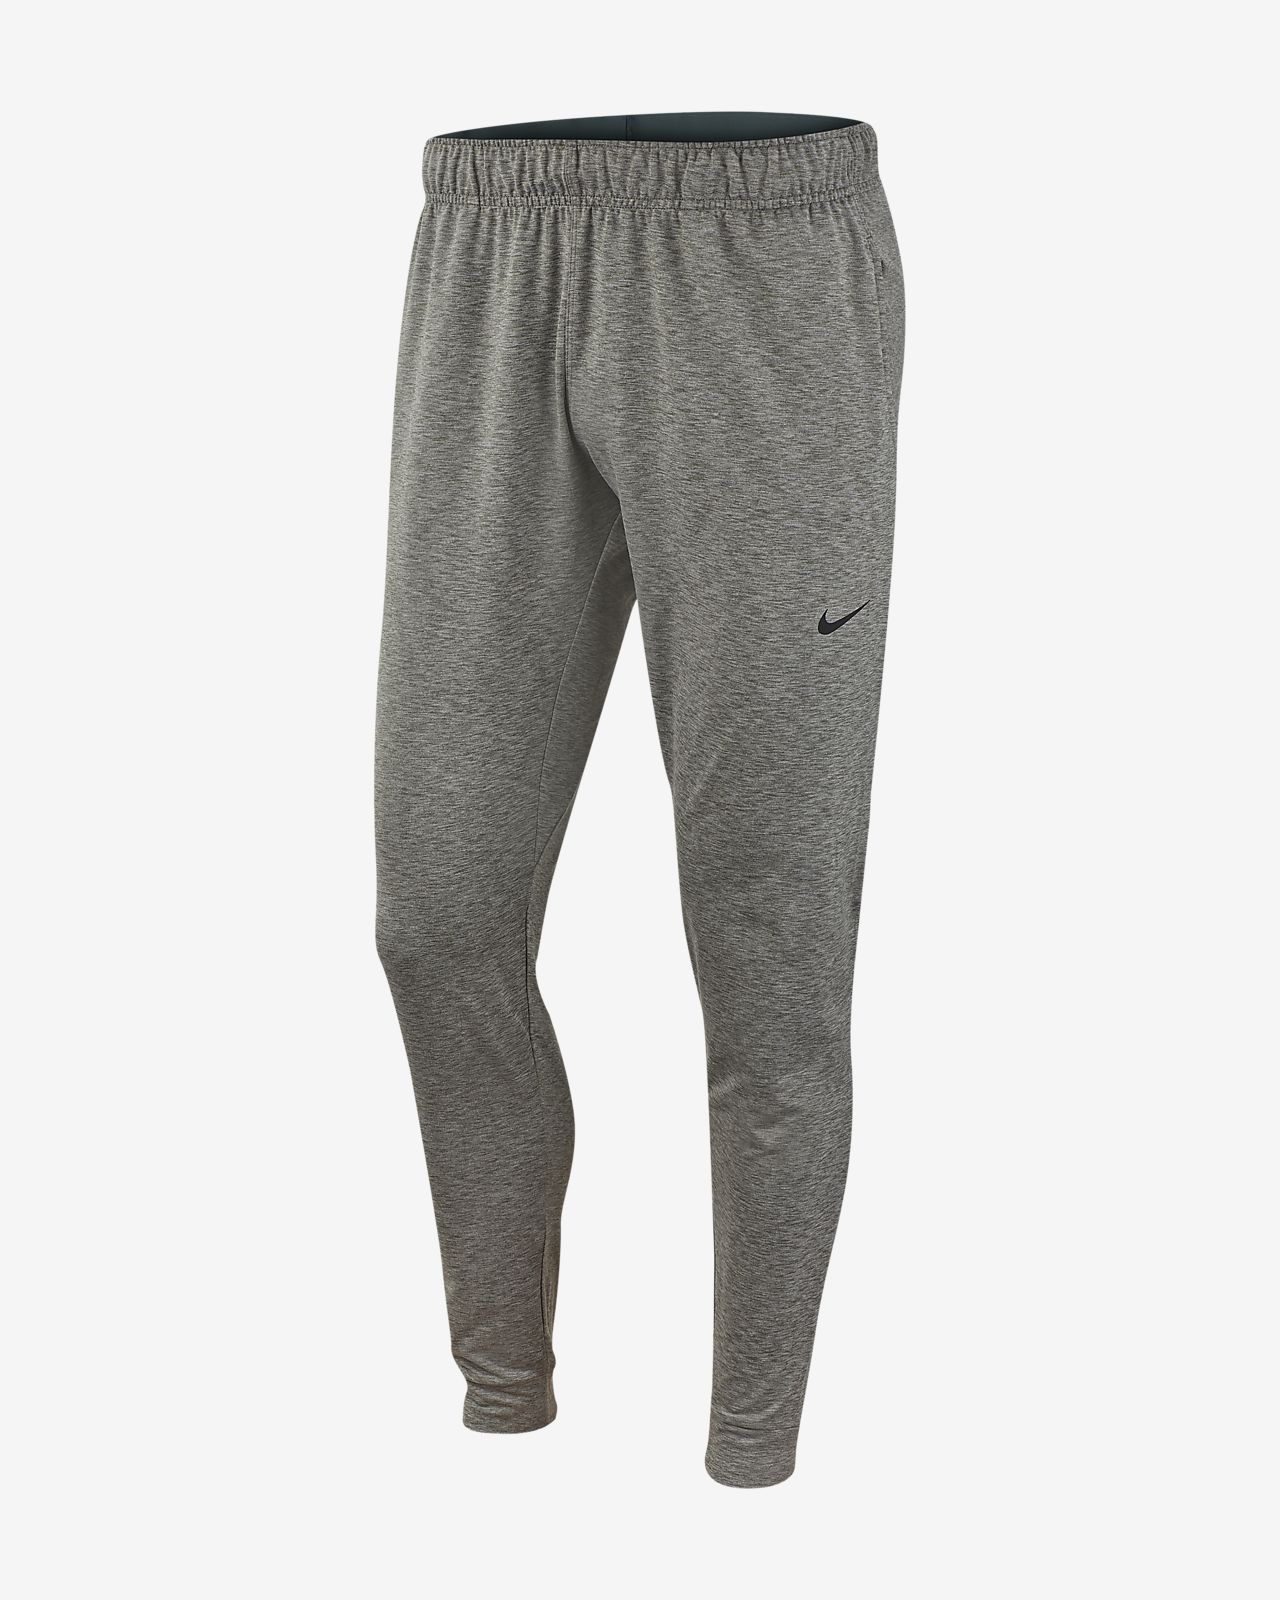 Nike Dri-FIT Men's Yoga Pants